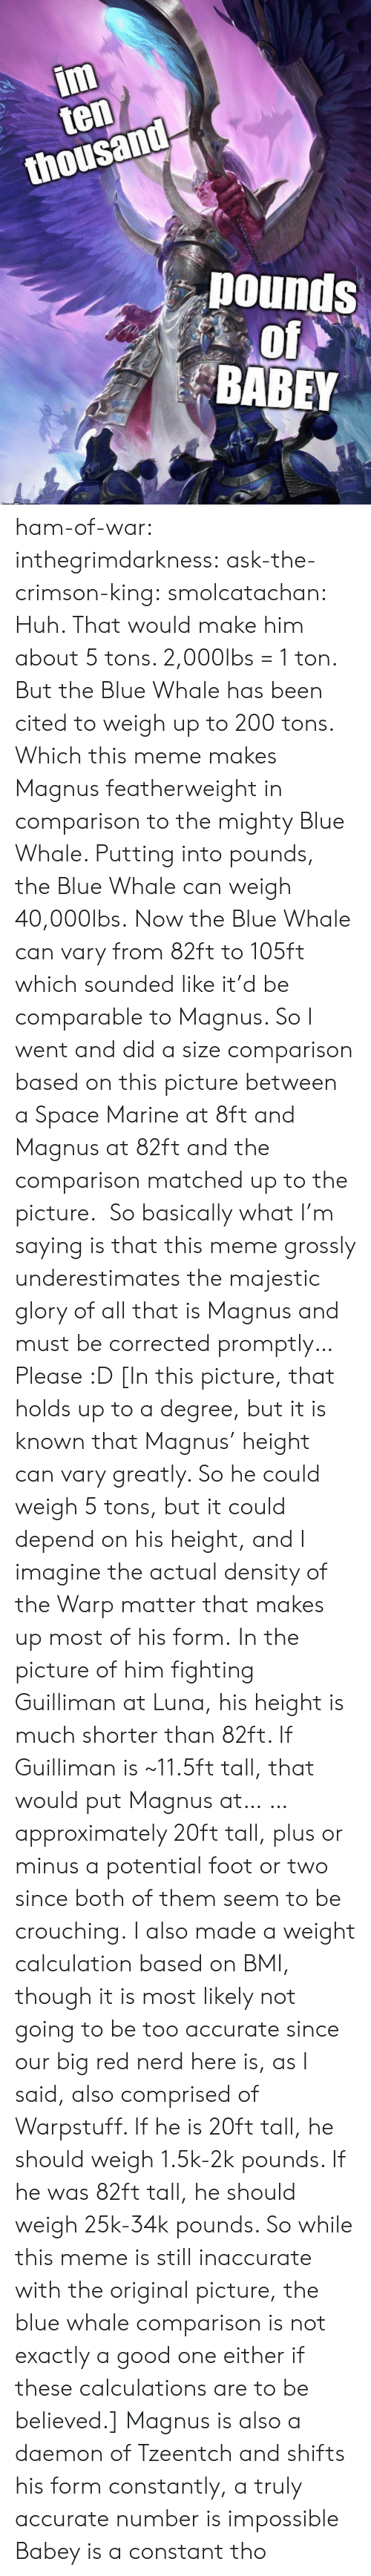 Mighty: im  ten  thousand  pounds  of  BABEY ham-of-war: inthegrimdarkness:   ask-the-crimson-king:   smolcatachan:  Huh. That would make him about 5 tons. 2,000lbs = 1 ton. But the Blue Whale has been cited to weigh up to 200 tons. Which this meme makes Magnus featherweight in comparison to the mighty Blue Whale. Putting into pounds, the Blue Whale can weigh 40,000lbs. Now the Blue Whale can vary from 82ft to 105ft which sounded like it'd be comparable to Magnus. So I went and did a size comparison based on this picture between a Space Marine at 8ft and Magnus at 82ft and the comparison matched up to the picture.  So basically what I'm saying is that this meme grossly underestimates the majestic glory of all that is Magnus and must be corrected promptly…Please :D  [In this picture, that holds up to a degree, but it is known that Magnus' height can vary greatly. So he could weigh 5 tons, but it could depend on his height, and I imagine the actual density of the Warp matter that makes up most of his form. In the picture of him fighting Guilliman at Luna, his height is much shorter than 82ft. If Guilliman is ~11.5ft tall, that would put Magnus at… … approximately 20ft tall, plus or minus a potential foot or two since both of them seem to be crouching. I also made a weight calculation based on BMI, though it is most likely not going to be too accurate since our big red nerd here is, as I said, also comprised of Warpstuff. If he is 20ft tall, he should weigh 1.5k-2k pounds. If he was 82ft tall, he should weigh 25k-34k pounds. So while this meme is still inaccurate with the original picture, the blue whale comparison is not exactly a good one either if these calculations are to be believed.]   Magnus is also a daemon of Tzeentch and shifts his form constantly, a truly accurate number is impossible    Babey is a constant tho